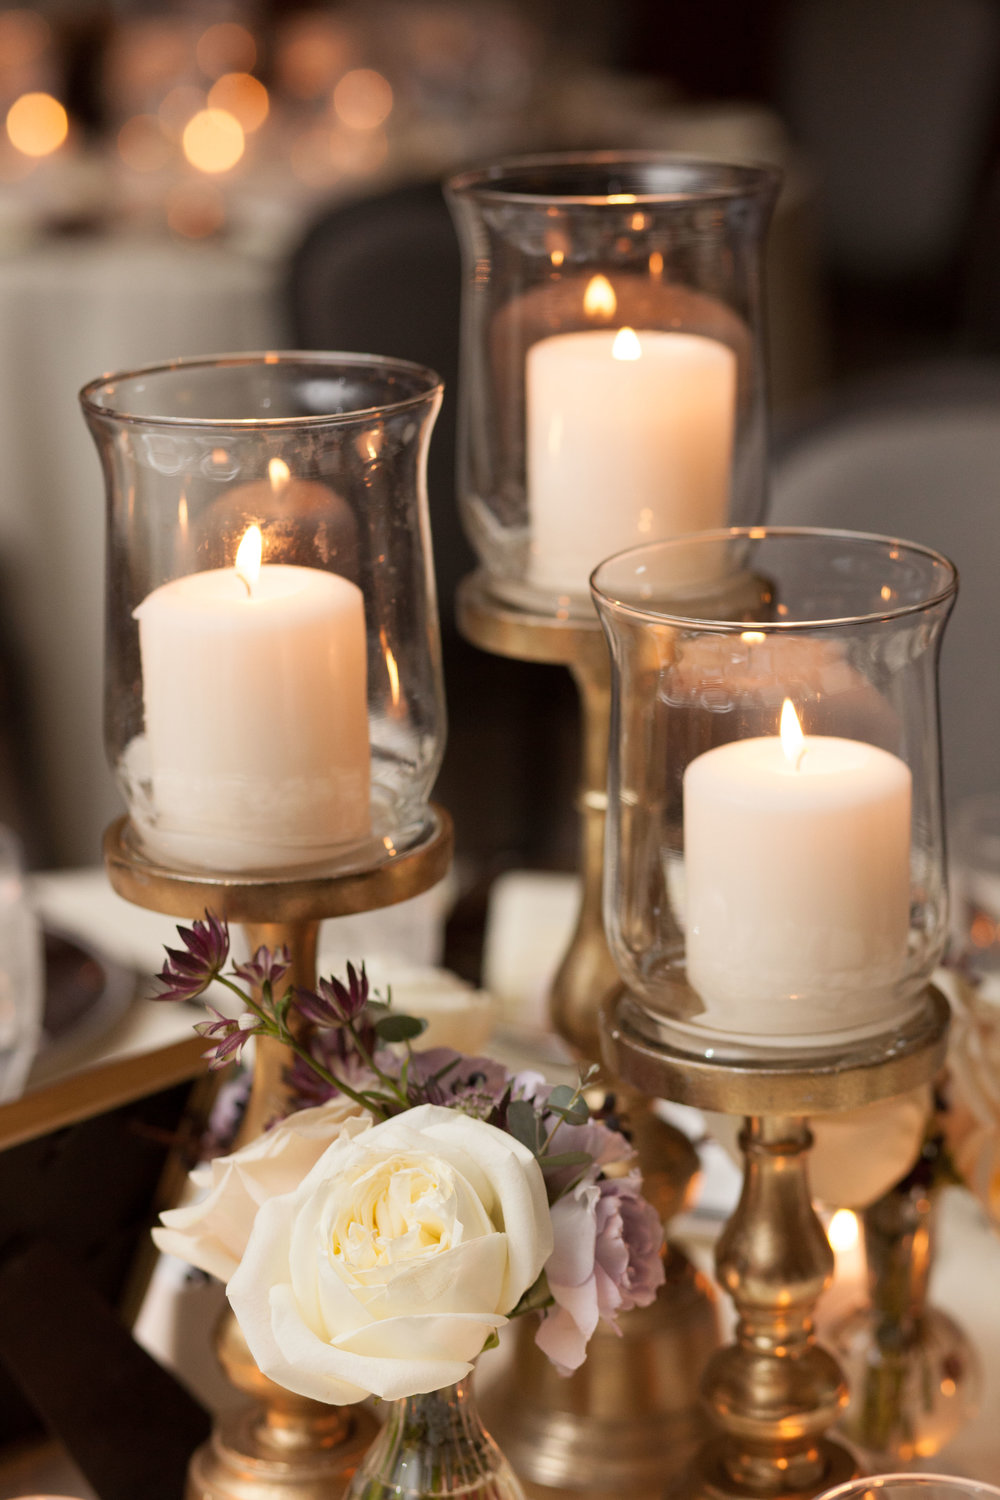 Fleur-Inc-Natalie-Probst-Photography-Lola-Event-Productions-Hotel-Allegro-Candle-Centerpiece